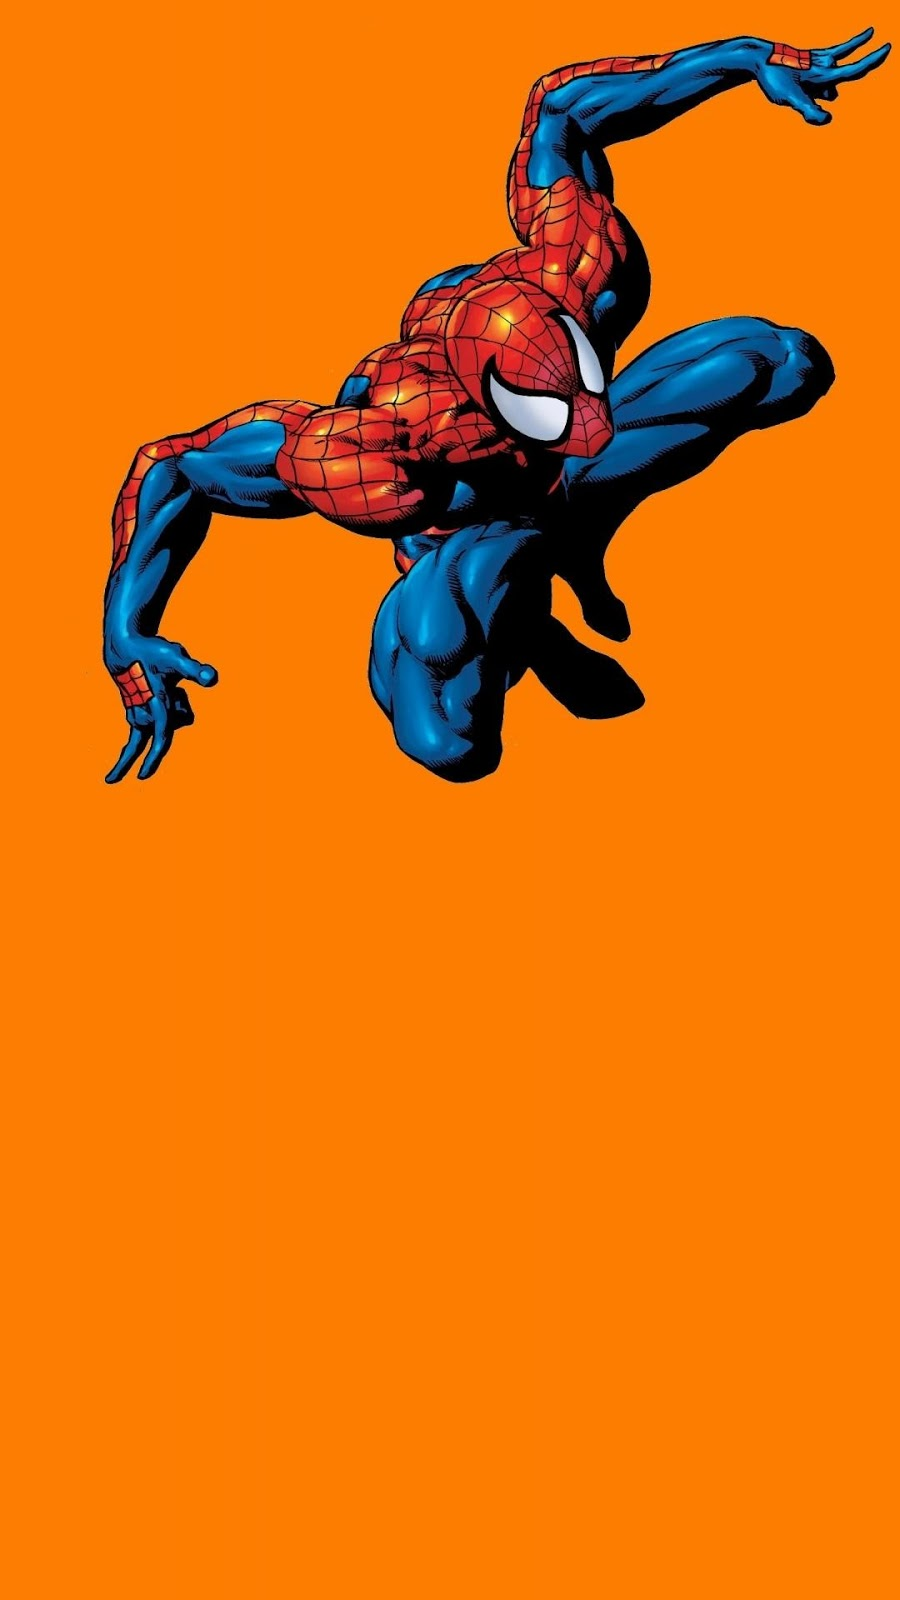 HD Spiderman Wallpaper for android